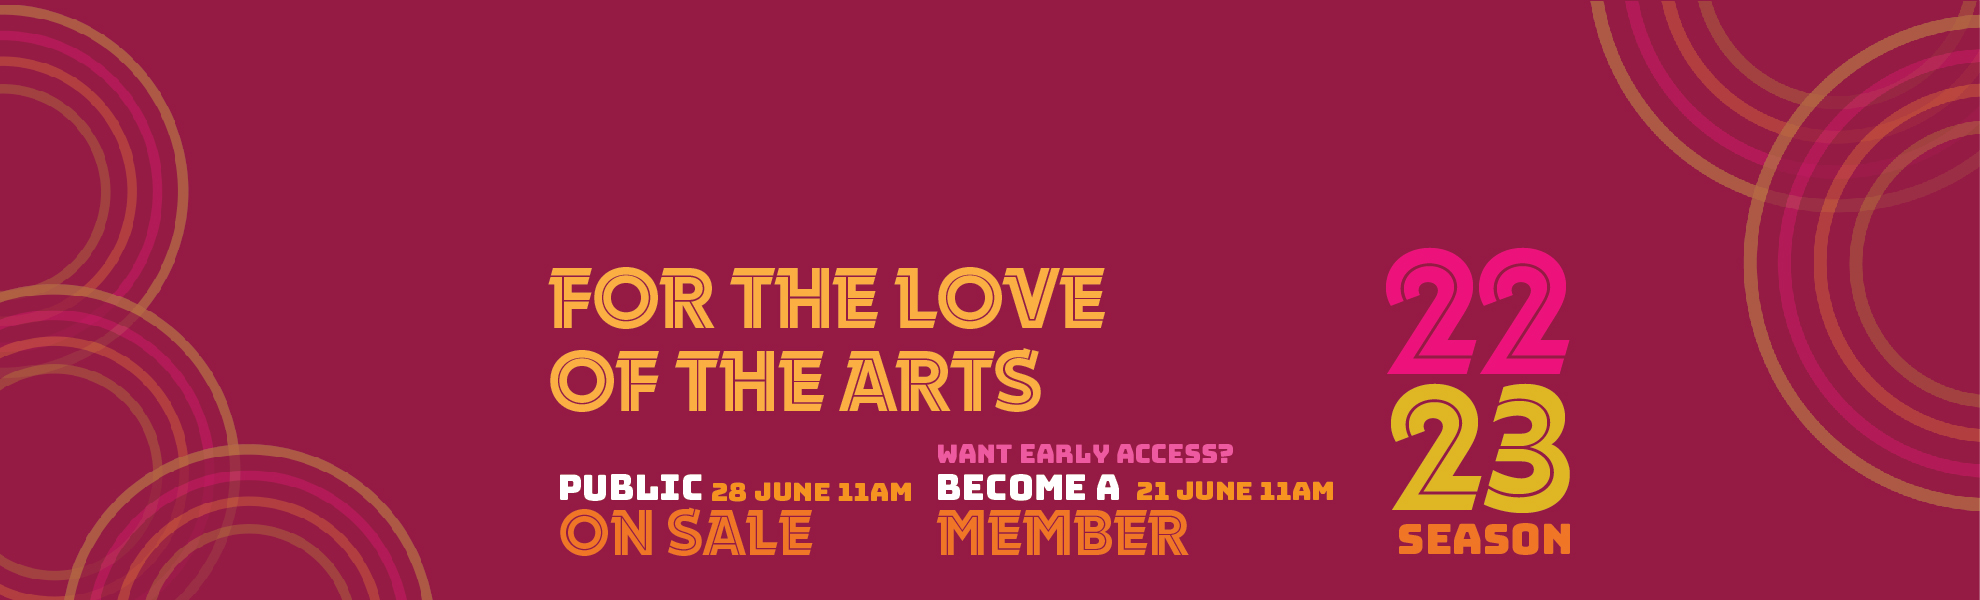 THE ARTS LIVE HERE